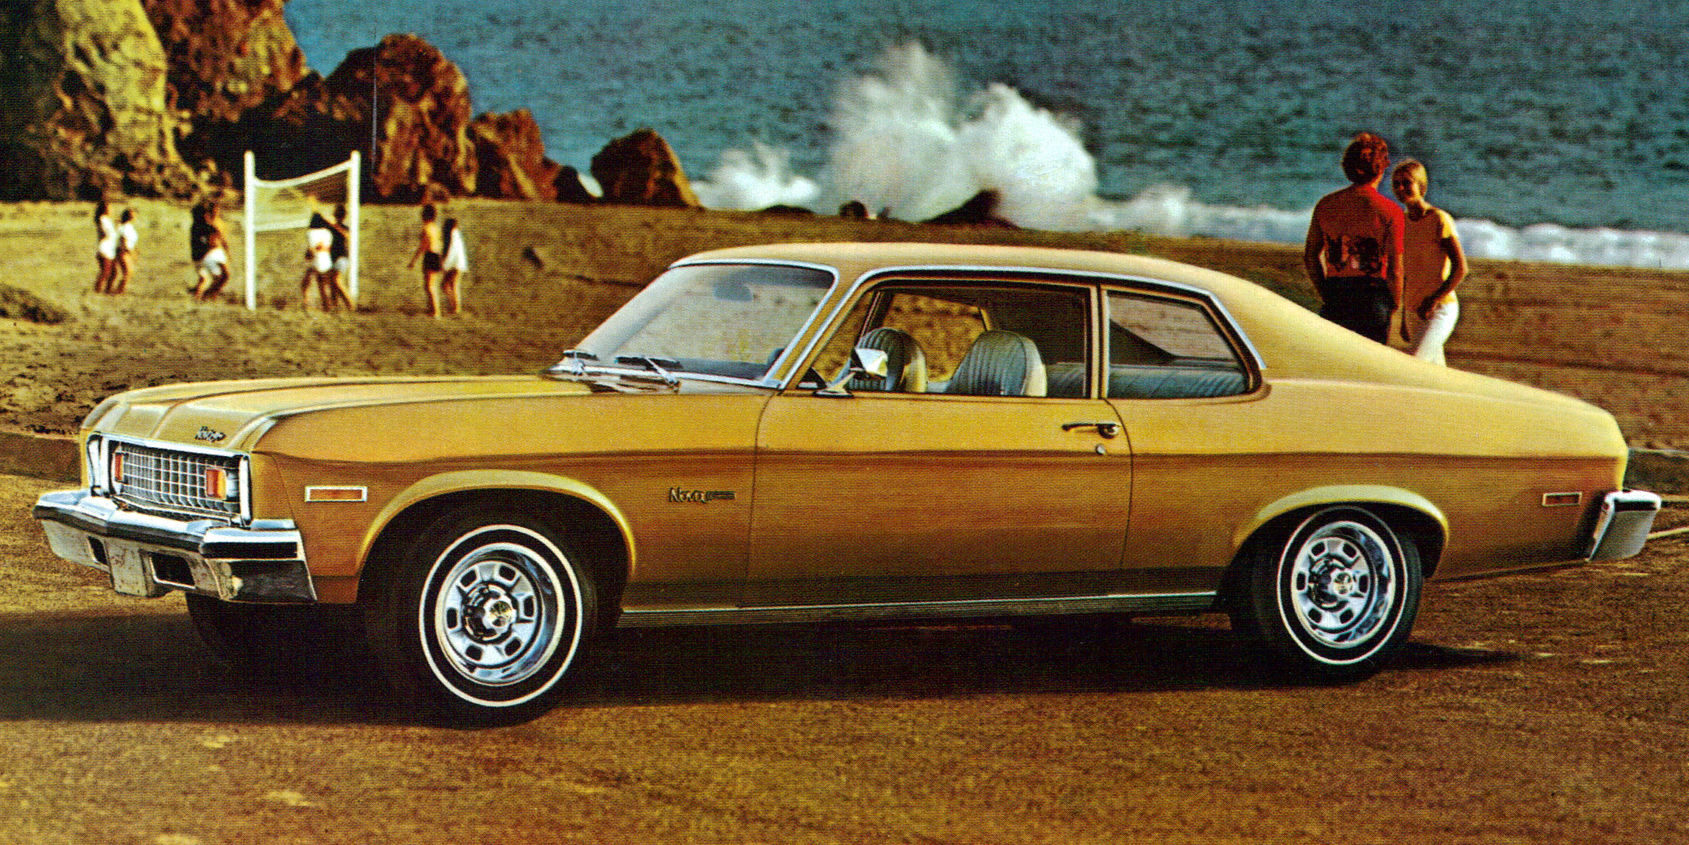 1973 Chevy Nova Coupe, Fastest Cars of 1973